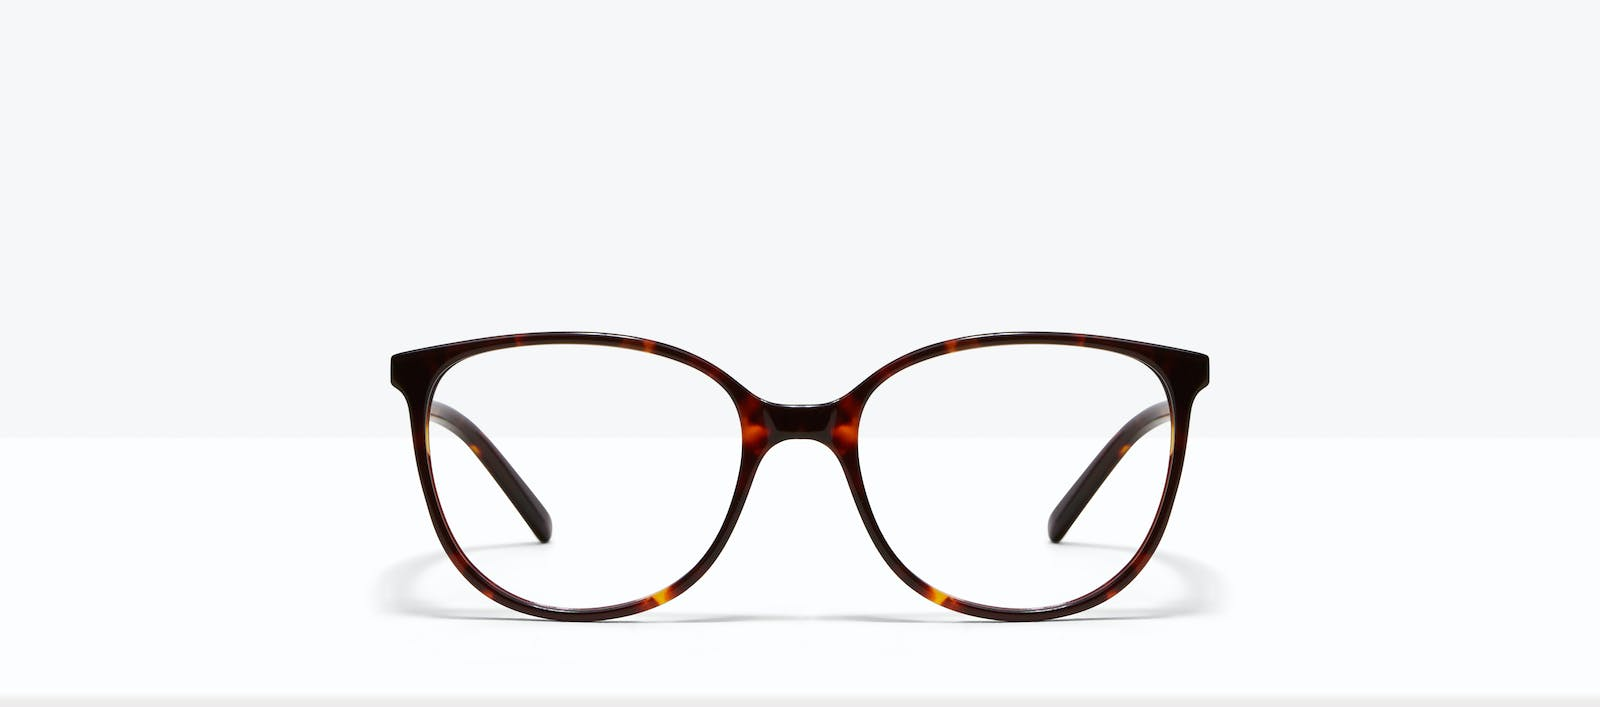 d39a01cd75a Affordable Fashion Glasses Round Eyeglasses Women Imagine Petite Sepia Kiss  Front